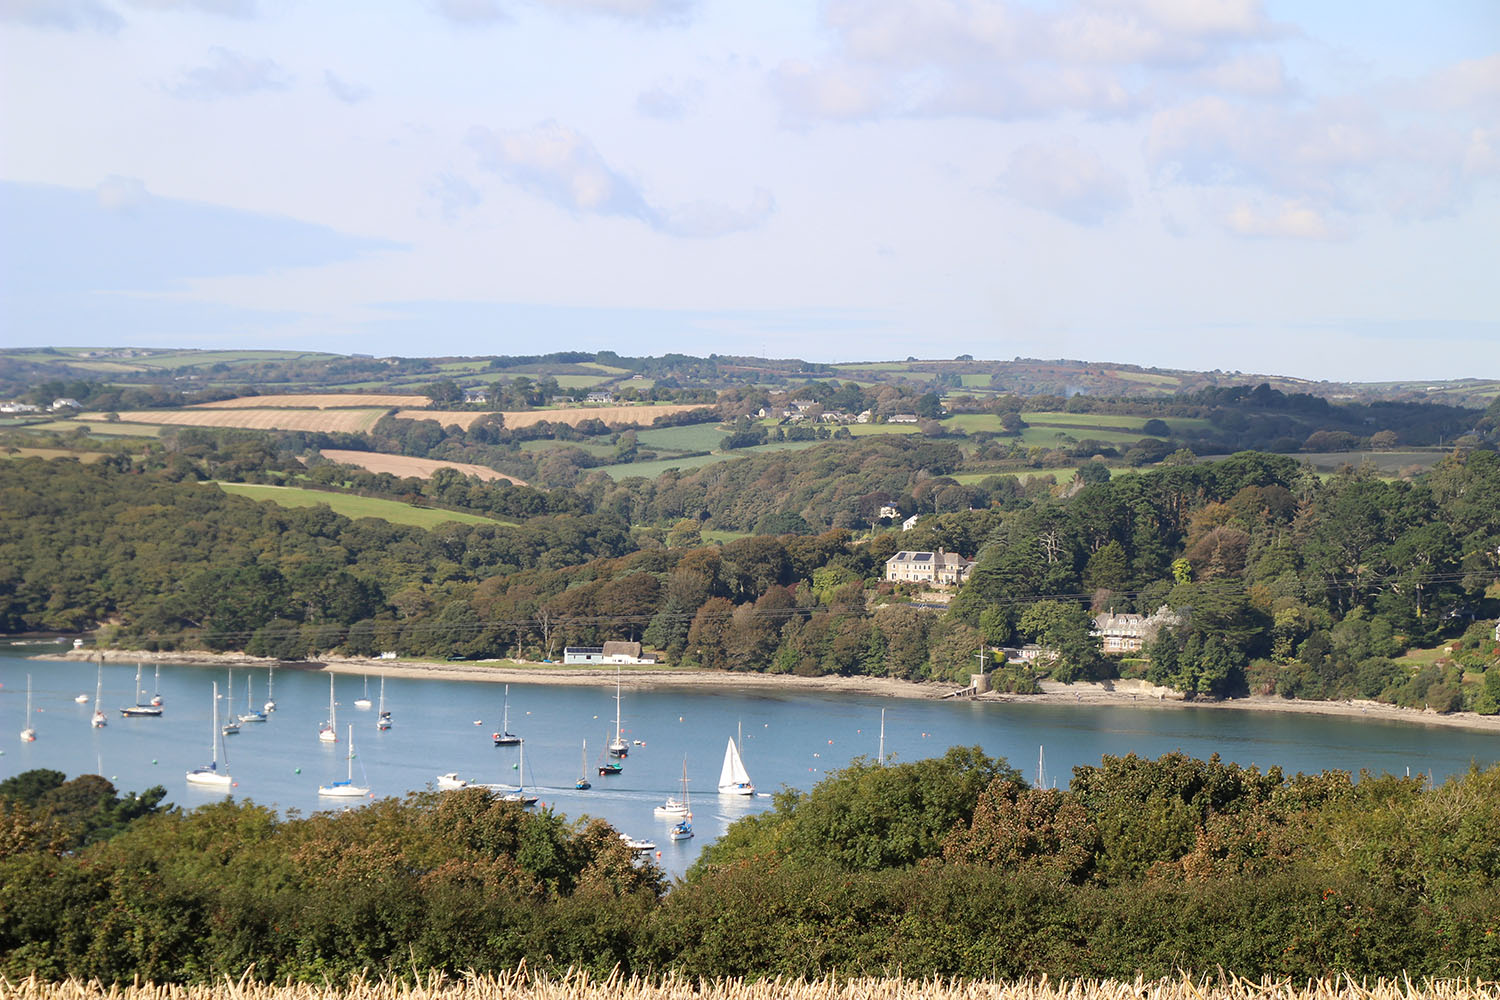 View above the helford river